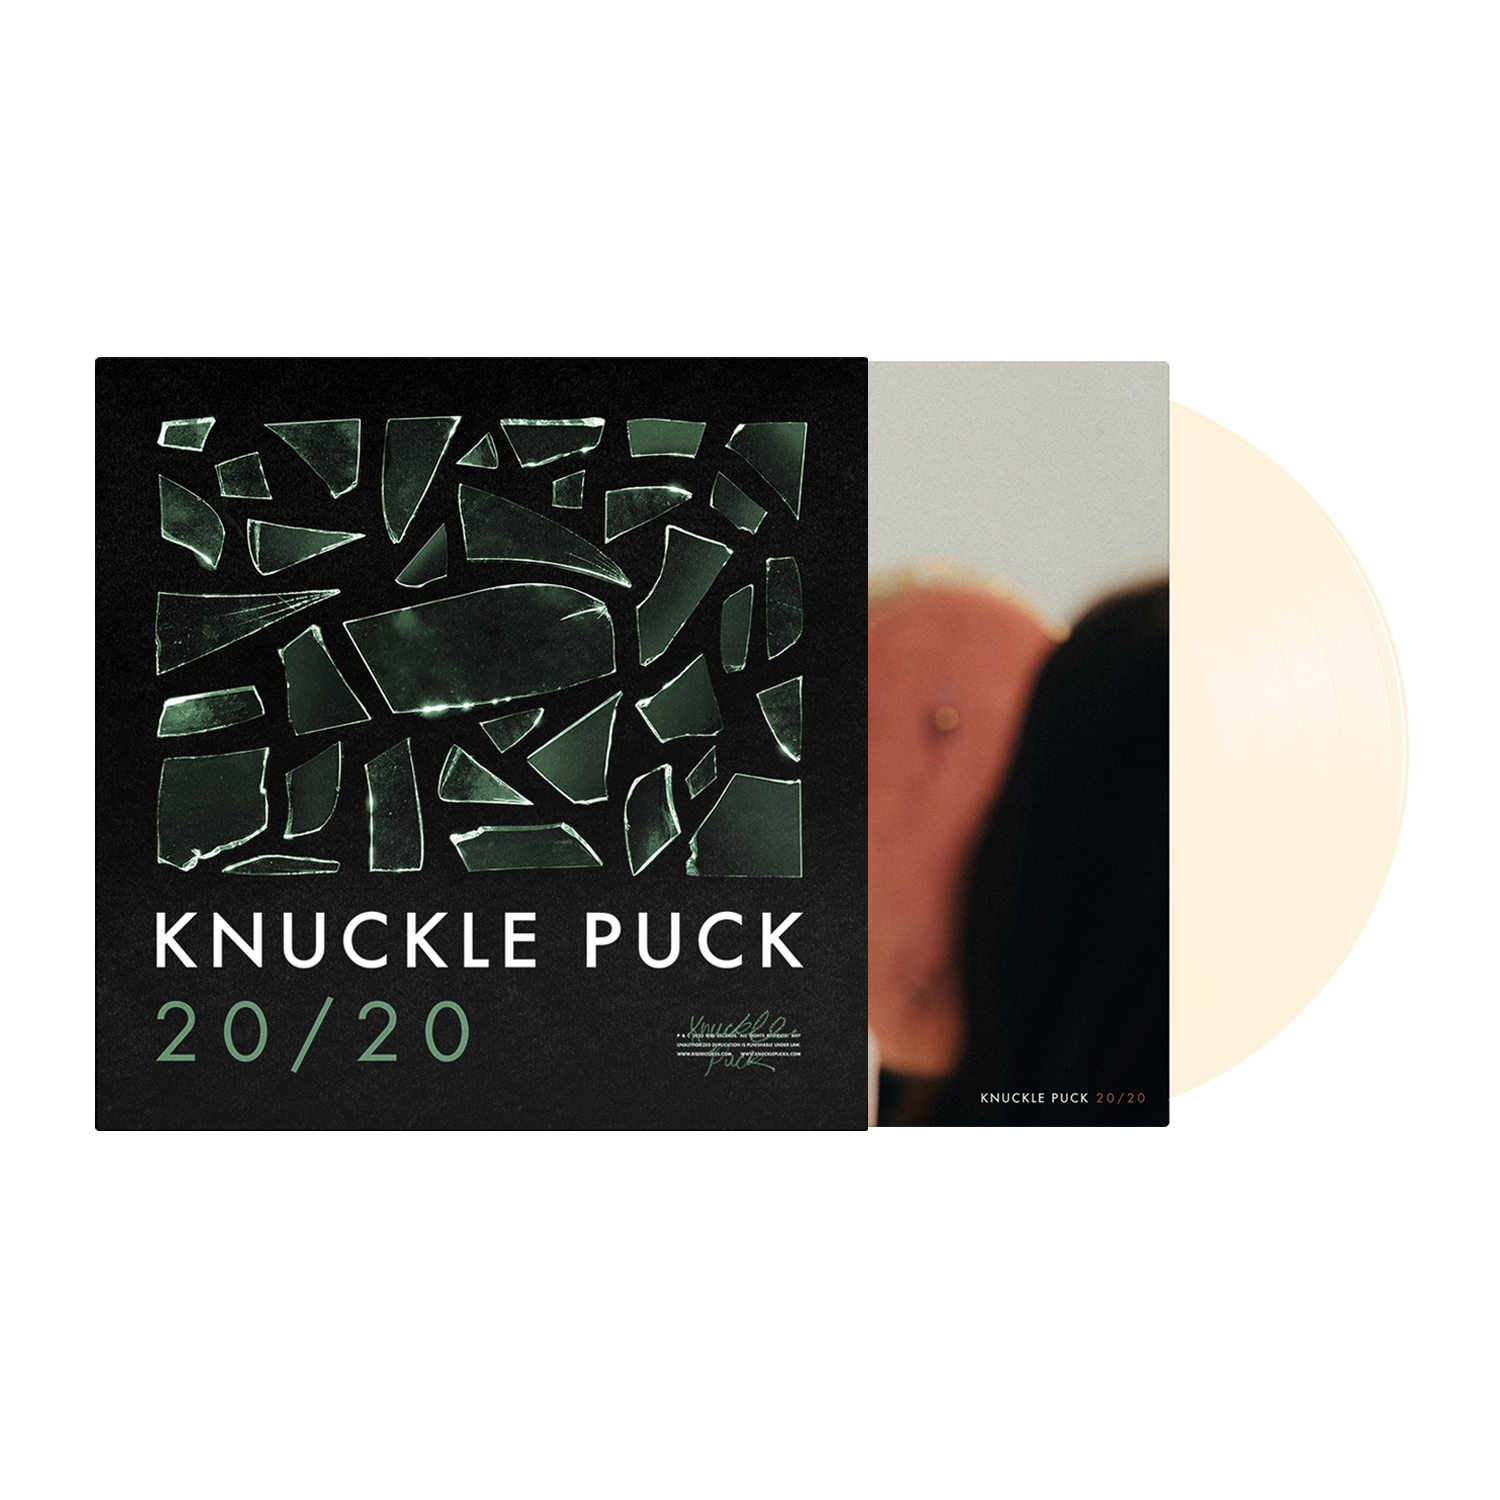 20/20 Vinyl w/ Limited Edition Screenprinted Cover